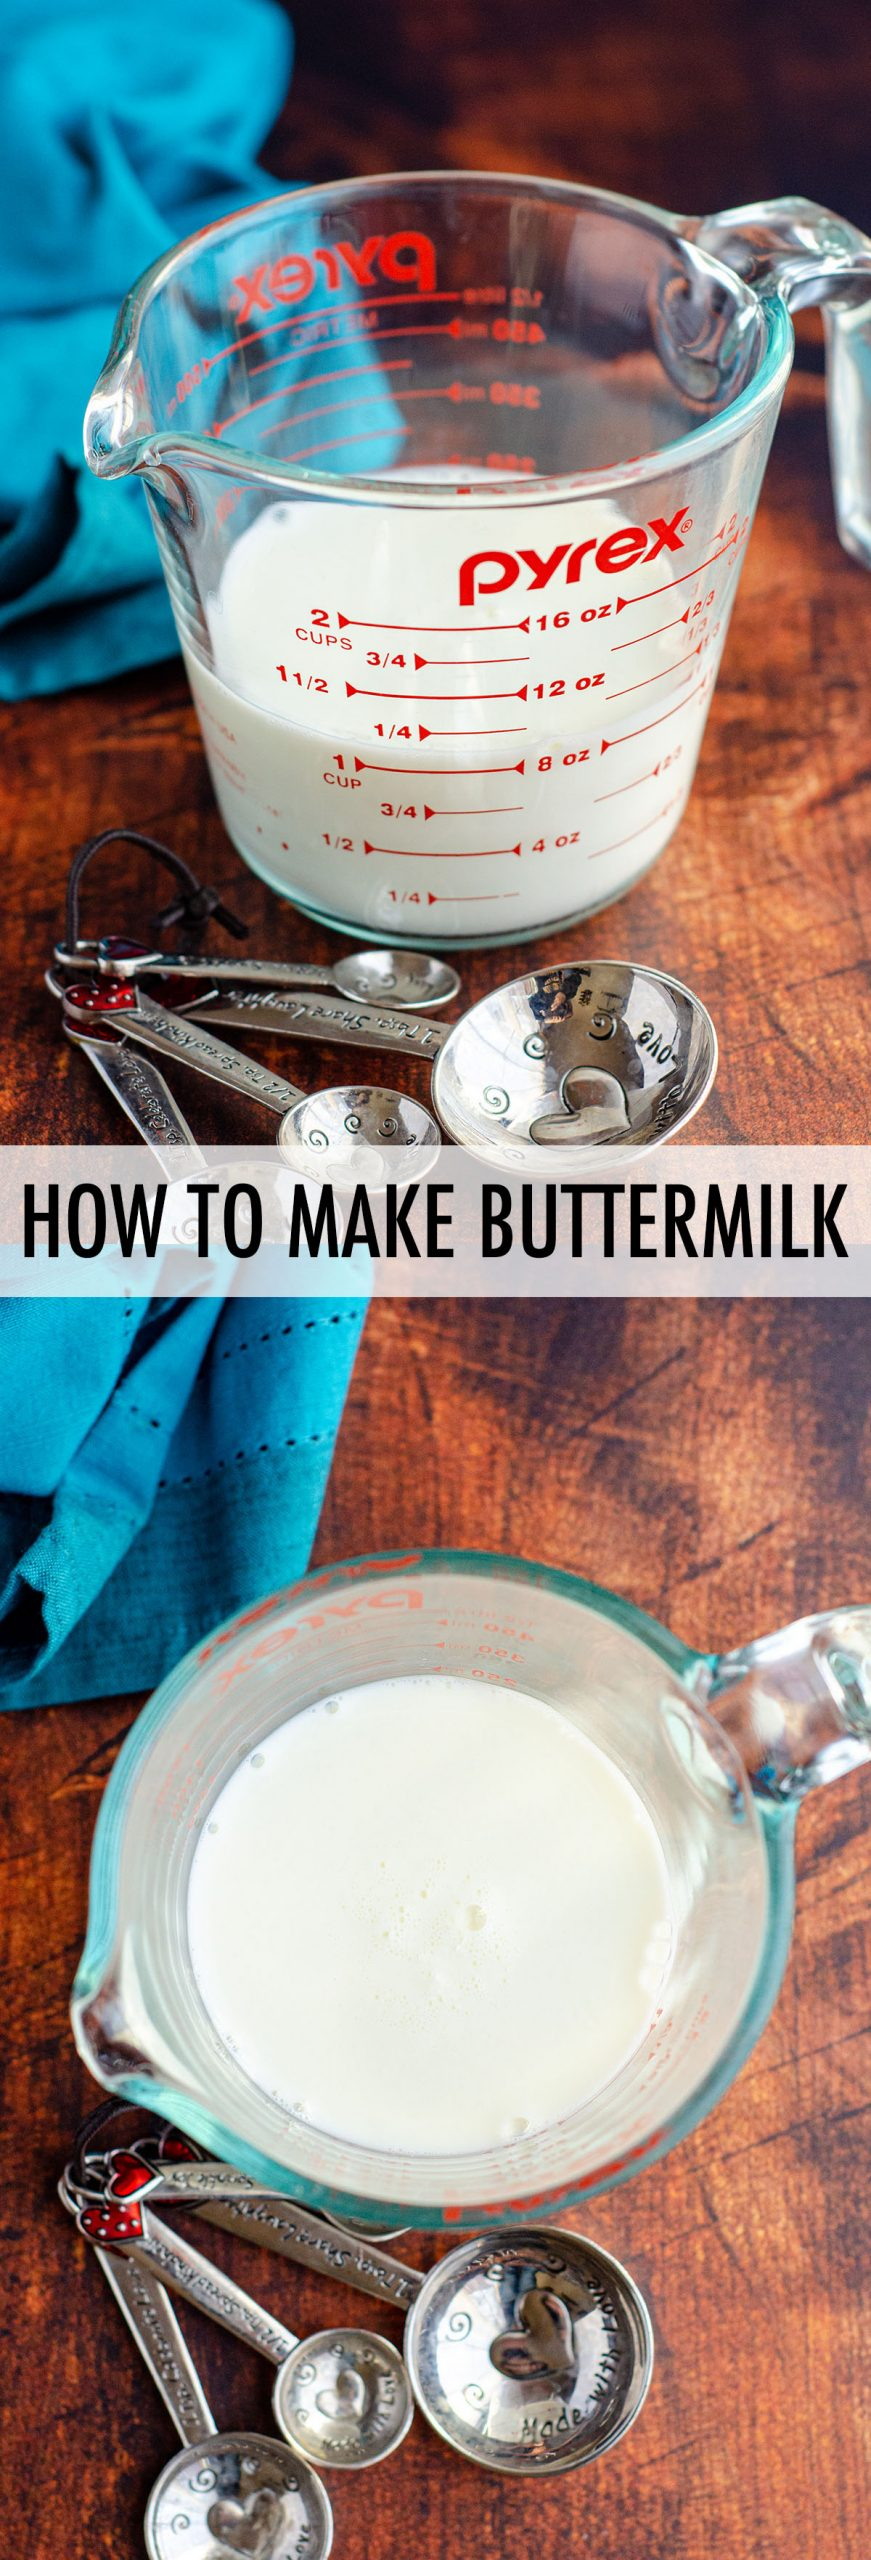 Homemade Buttermilk In 2020 Homemade Buttermilk How To Make Buttermilk Milk Recipes